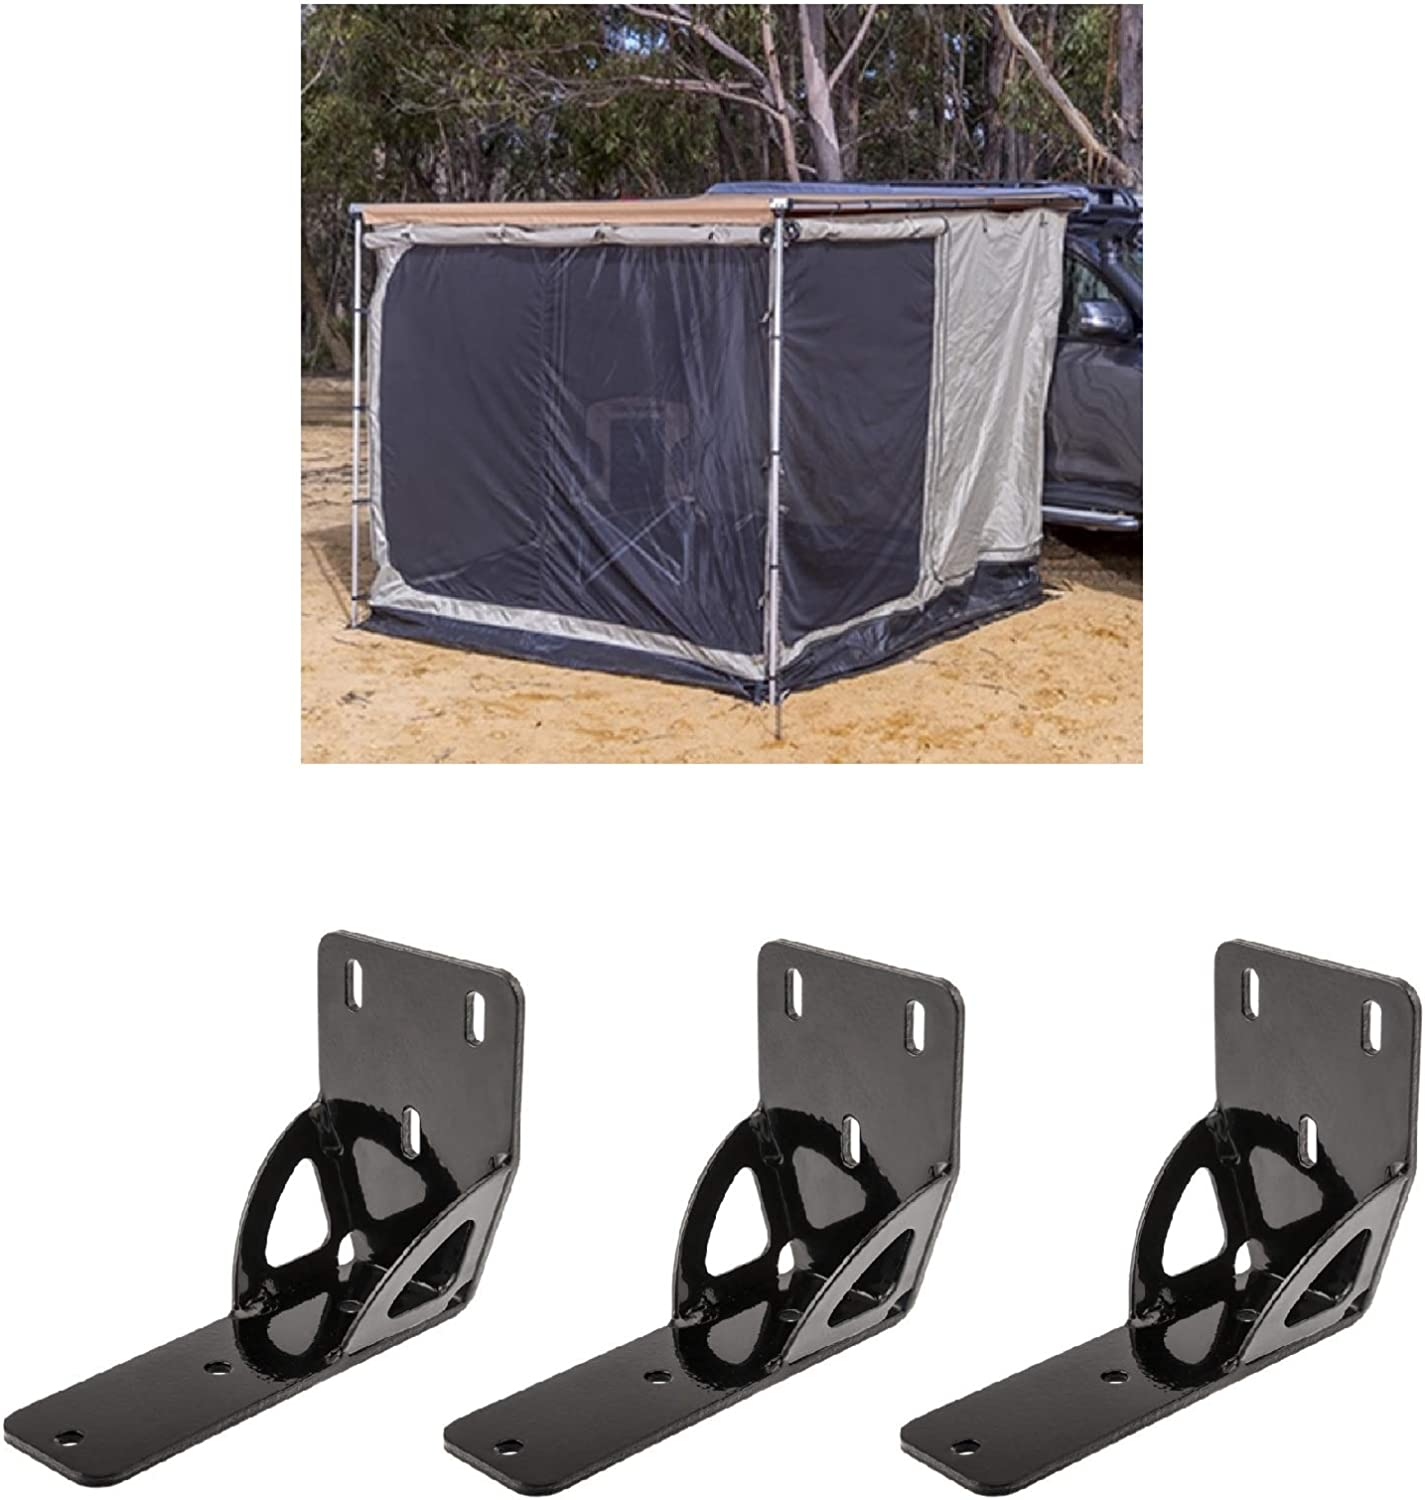 ARB 813208A Awning Room Deluxe w//Floor 2000mm x 2500mm Heavy Duty